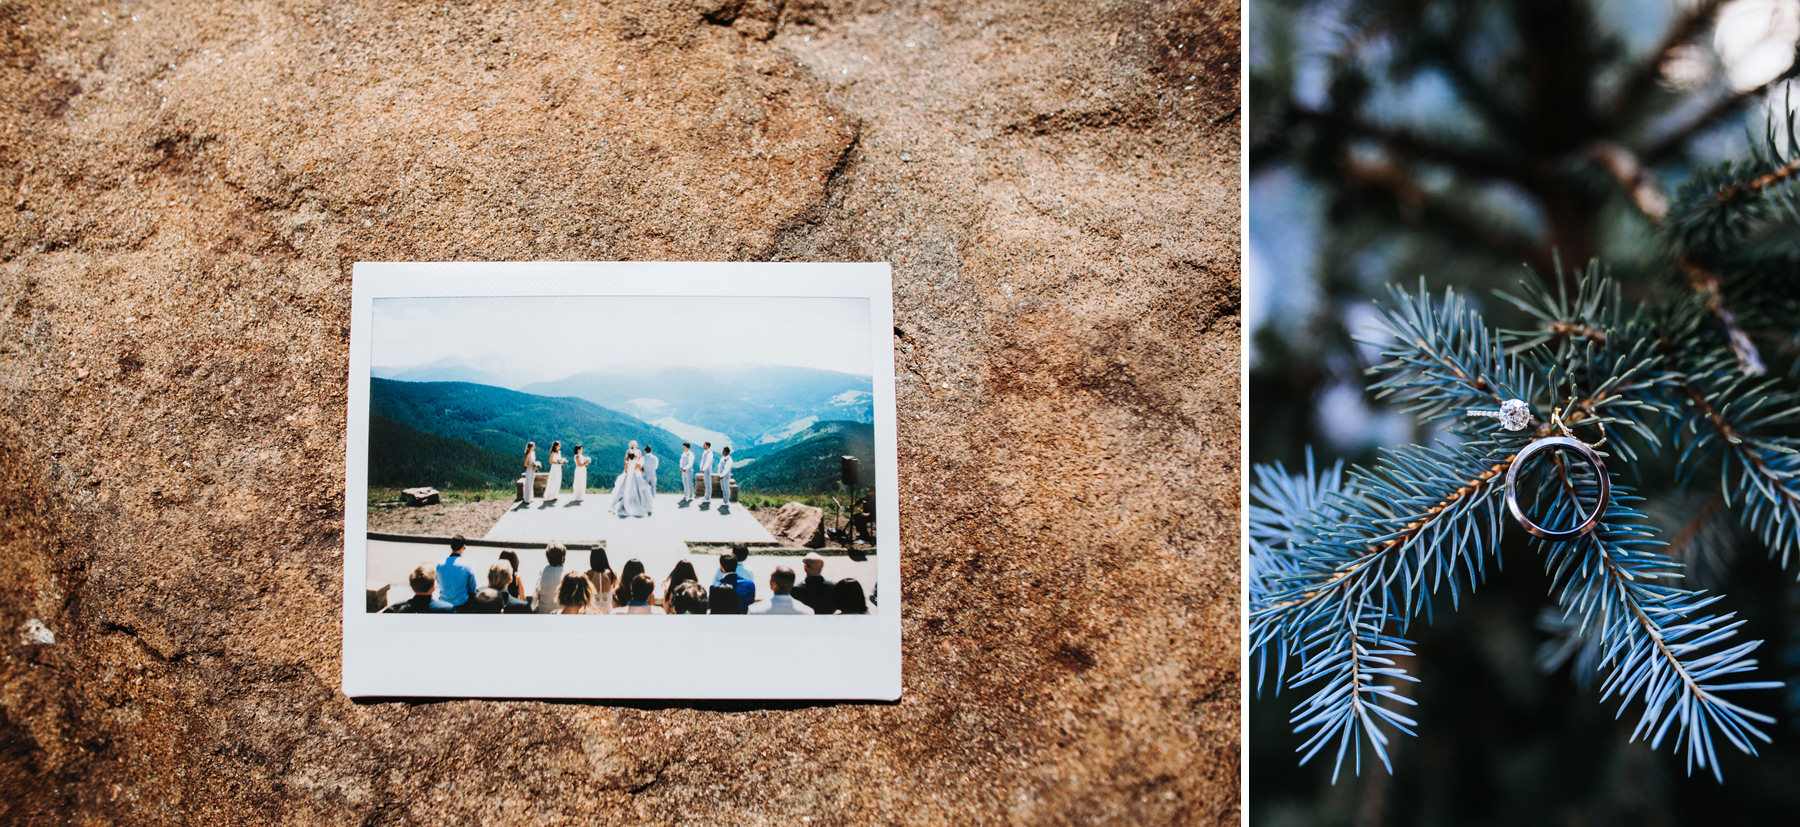 5_Vail Wedding Deck Mountain Top Wedding Vail, Colorado_Kindling Wedding Photography.JPG